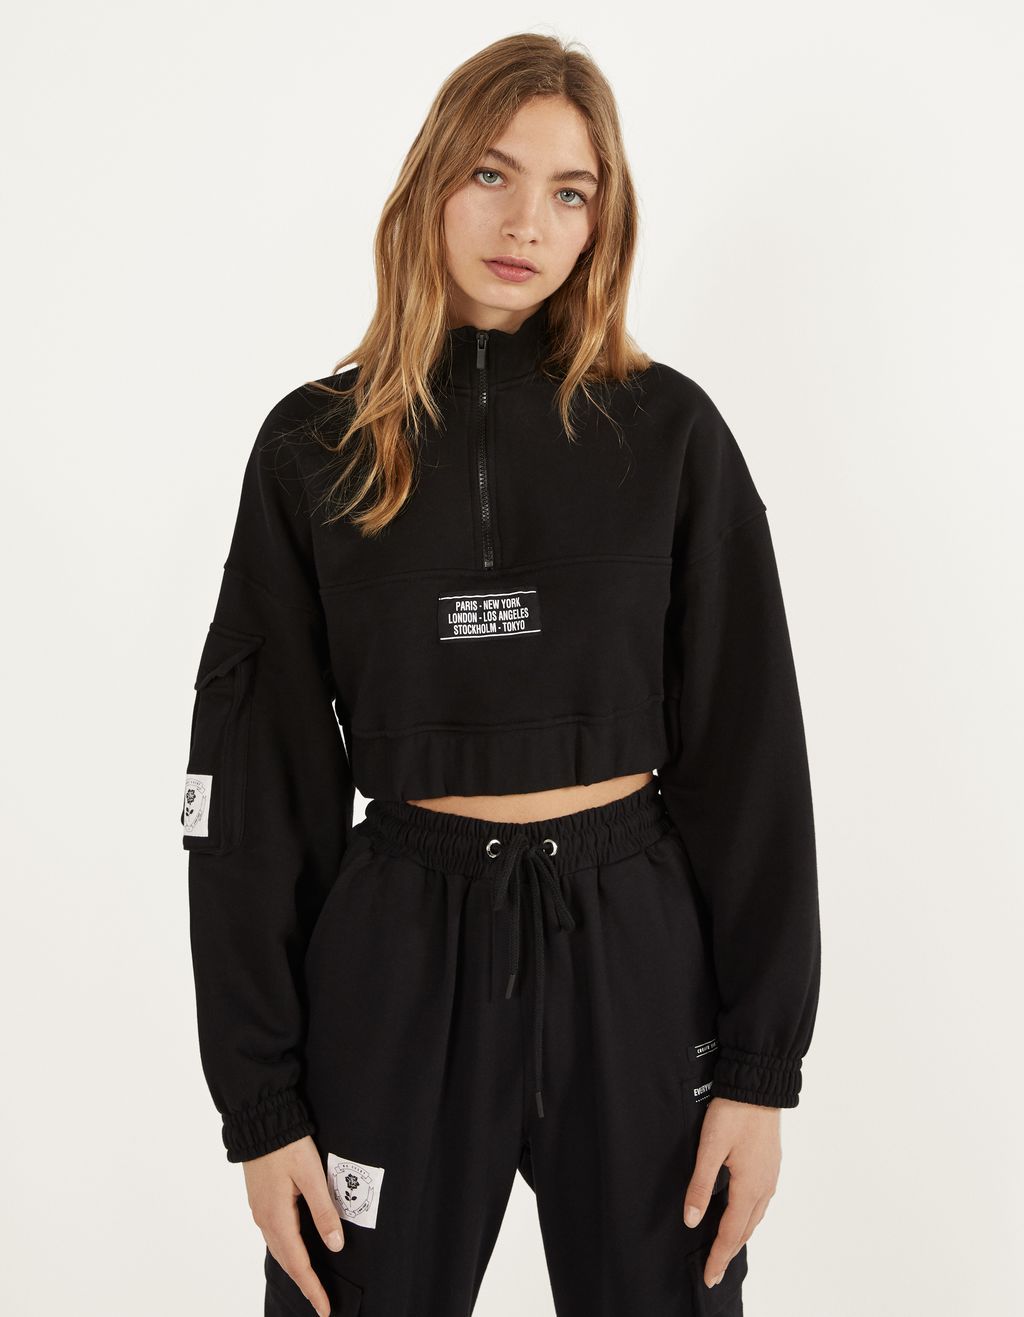 Cropped sweatshirt with zipped neck